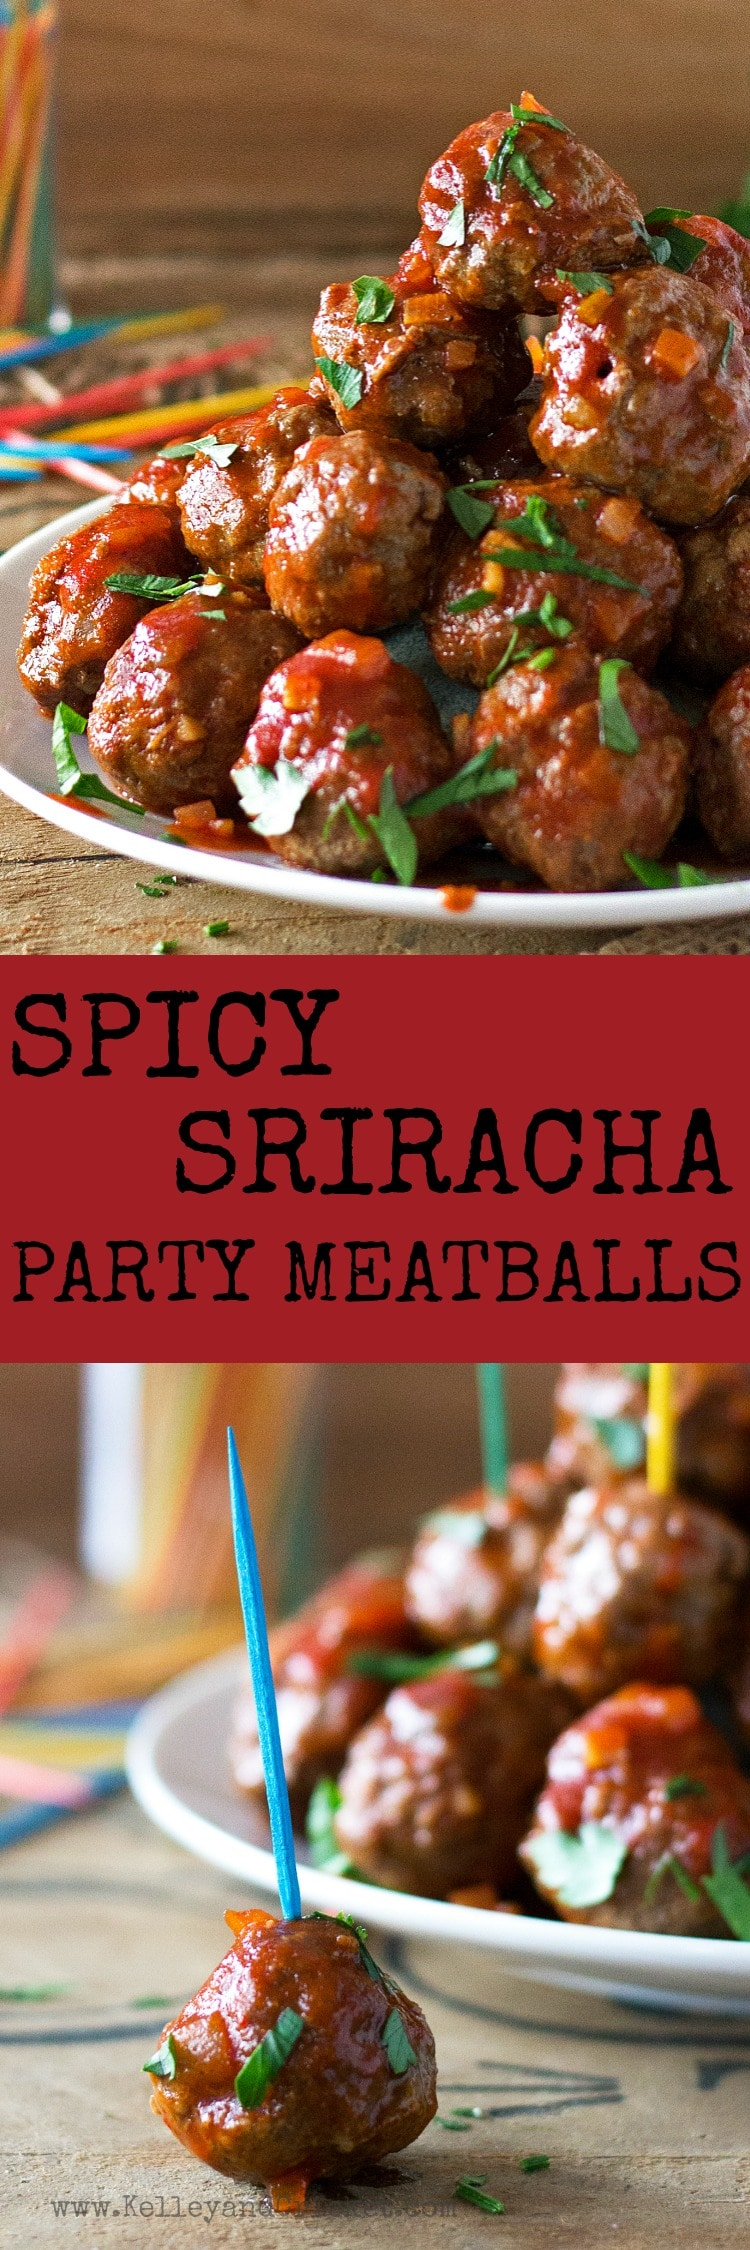 Spicy Sriracha Party Meatballs {Grain-Free, Gluten-Free, Paleo ...